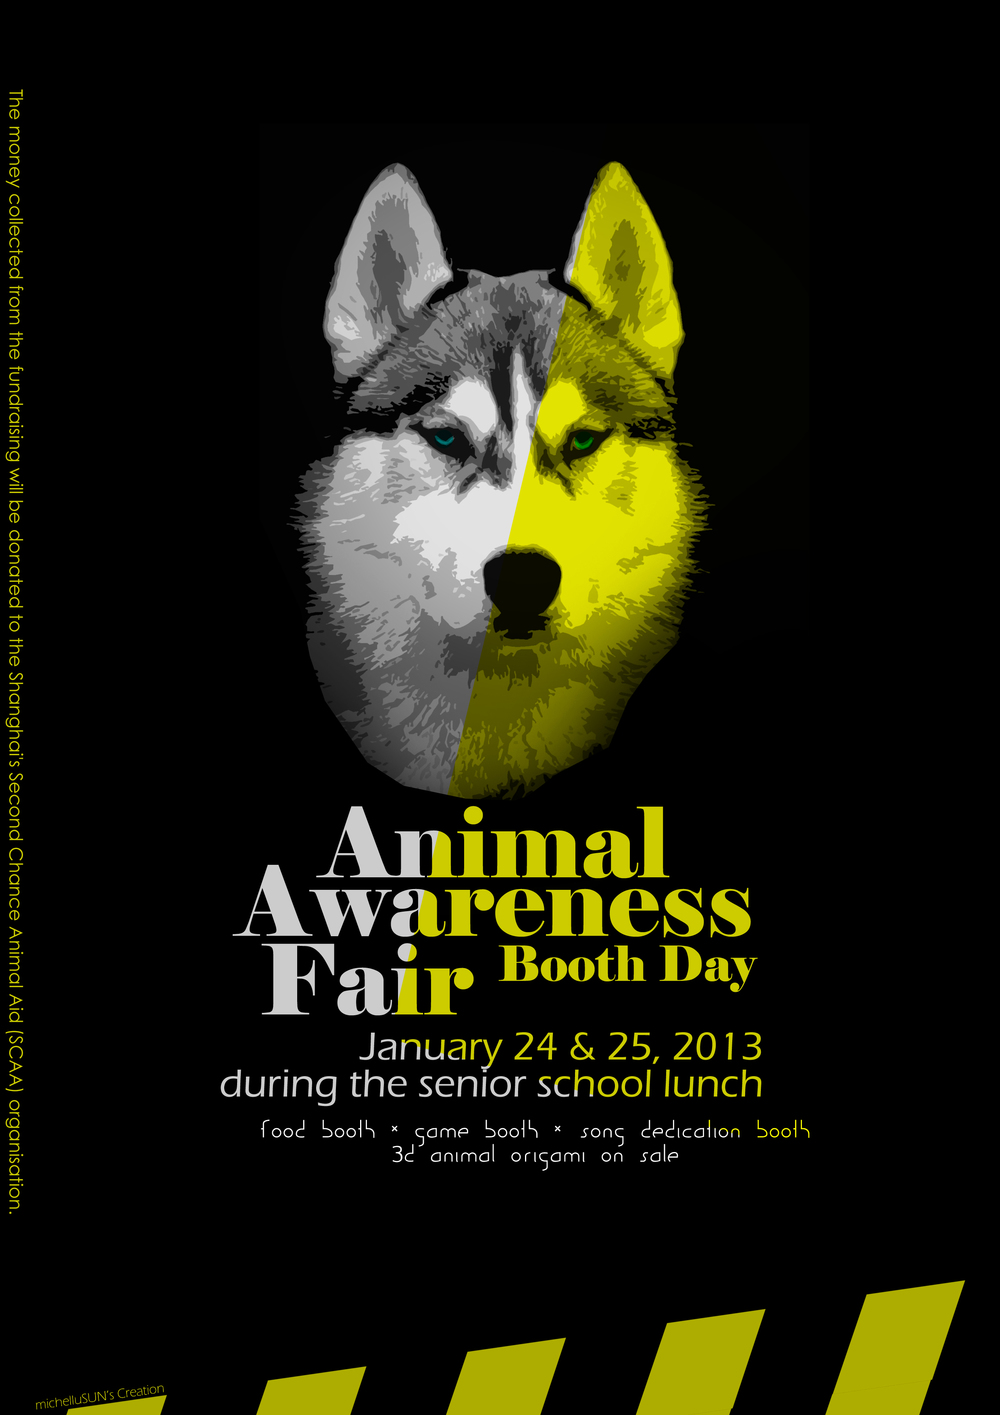 Animal Awareness Fair Booth Day Poster